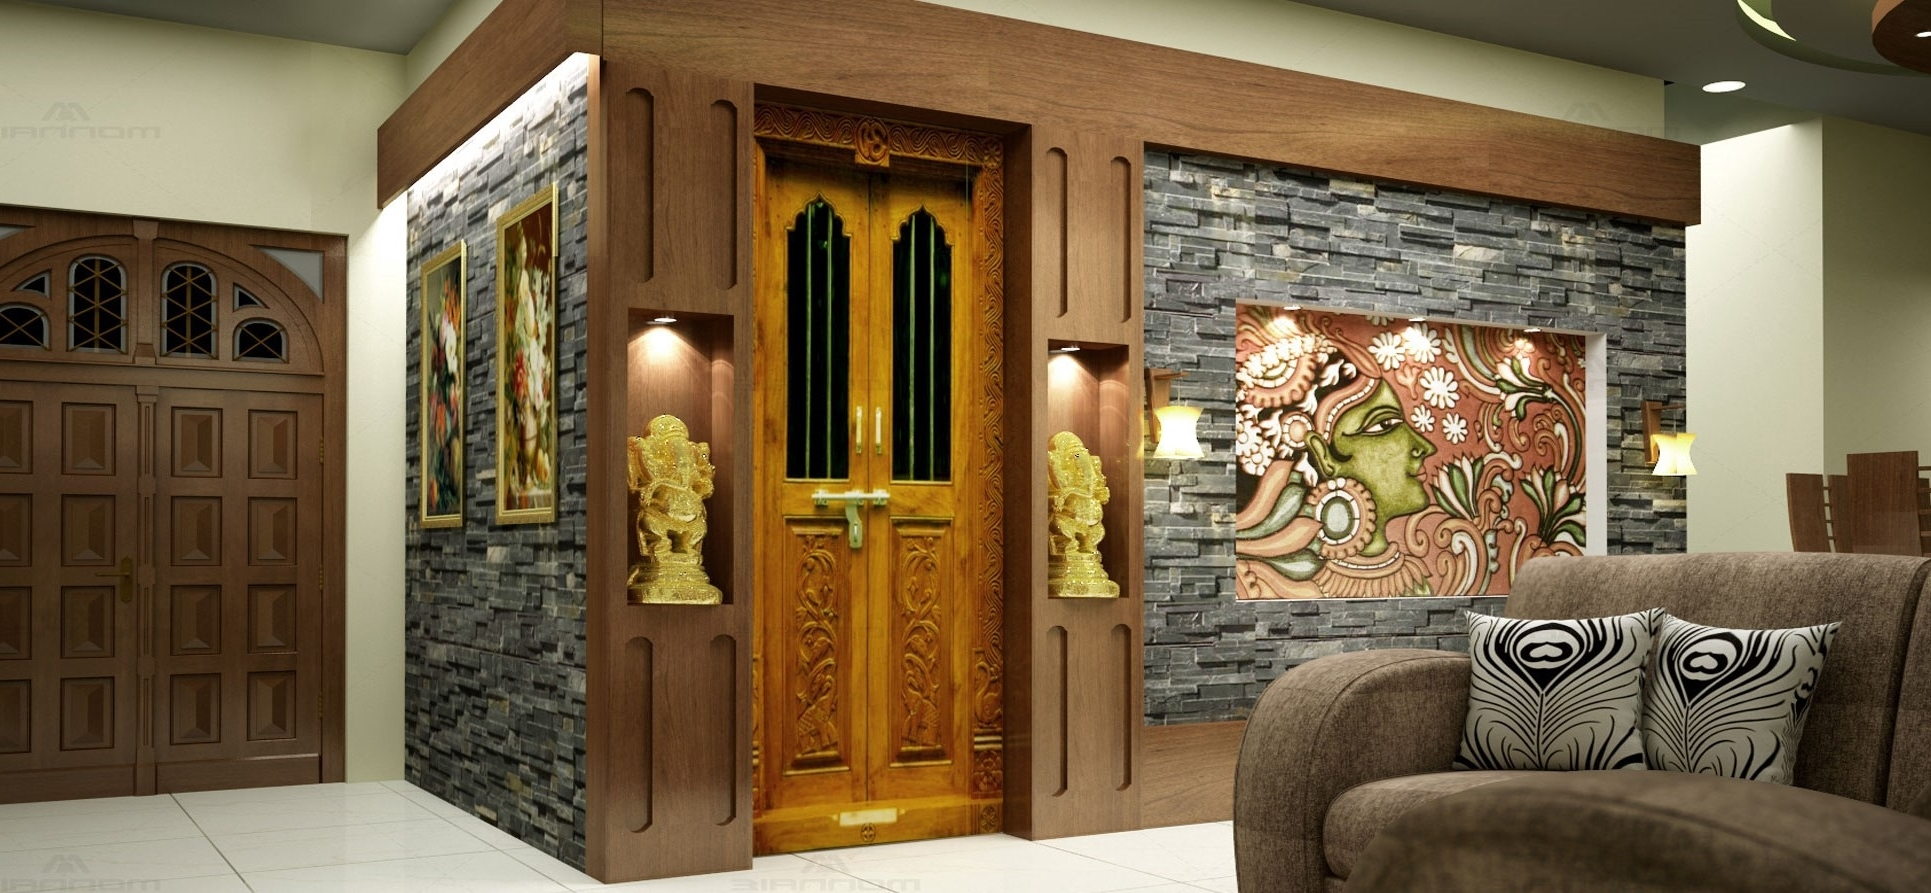 Top 4 Pooja Unit Designs For Your Indian Home Décor | 10+ Pooja Shelf In Living Room Ideas